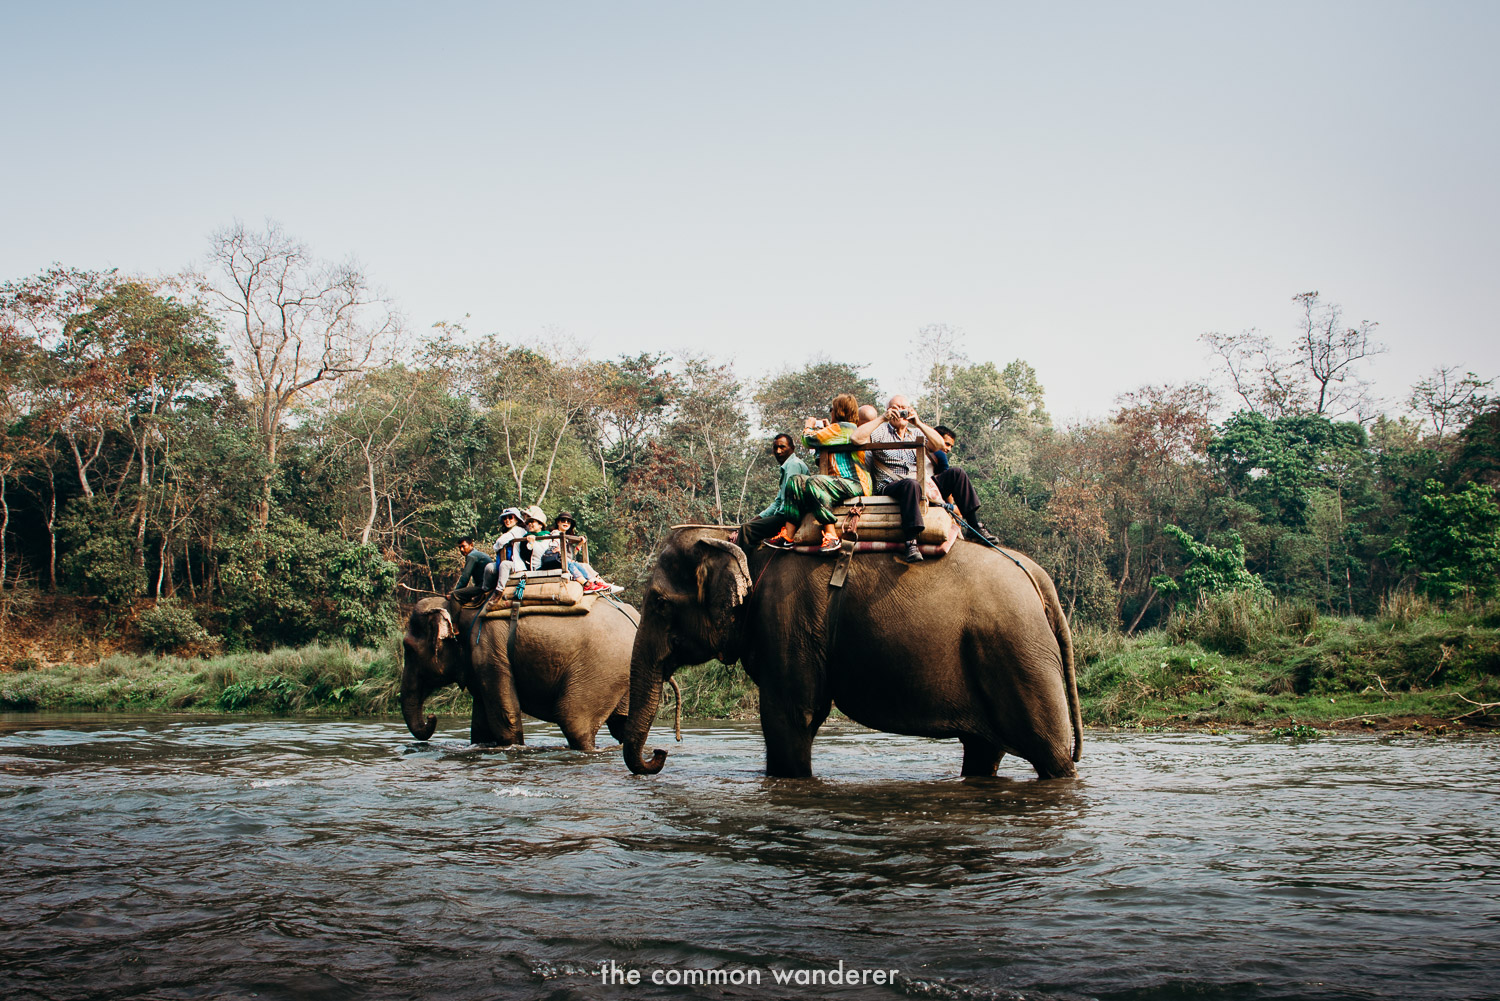 Not riding animals is one of our top responsible travel tips